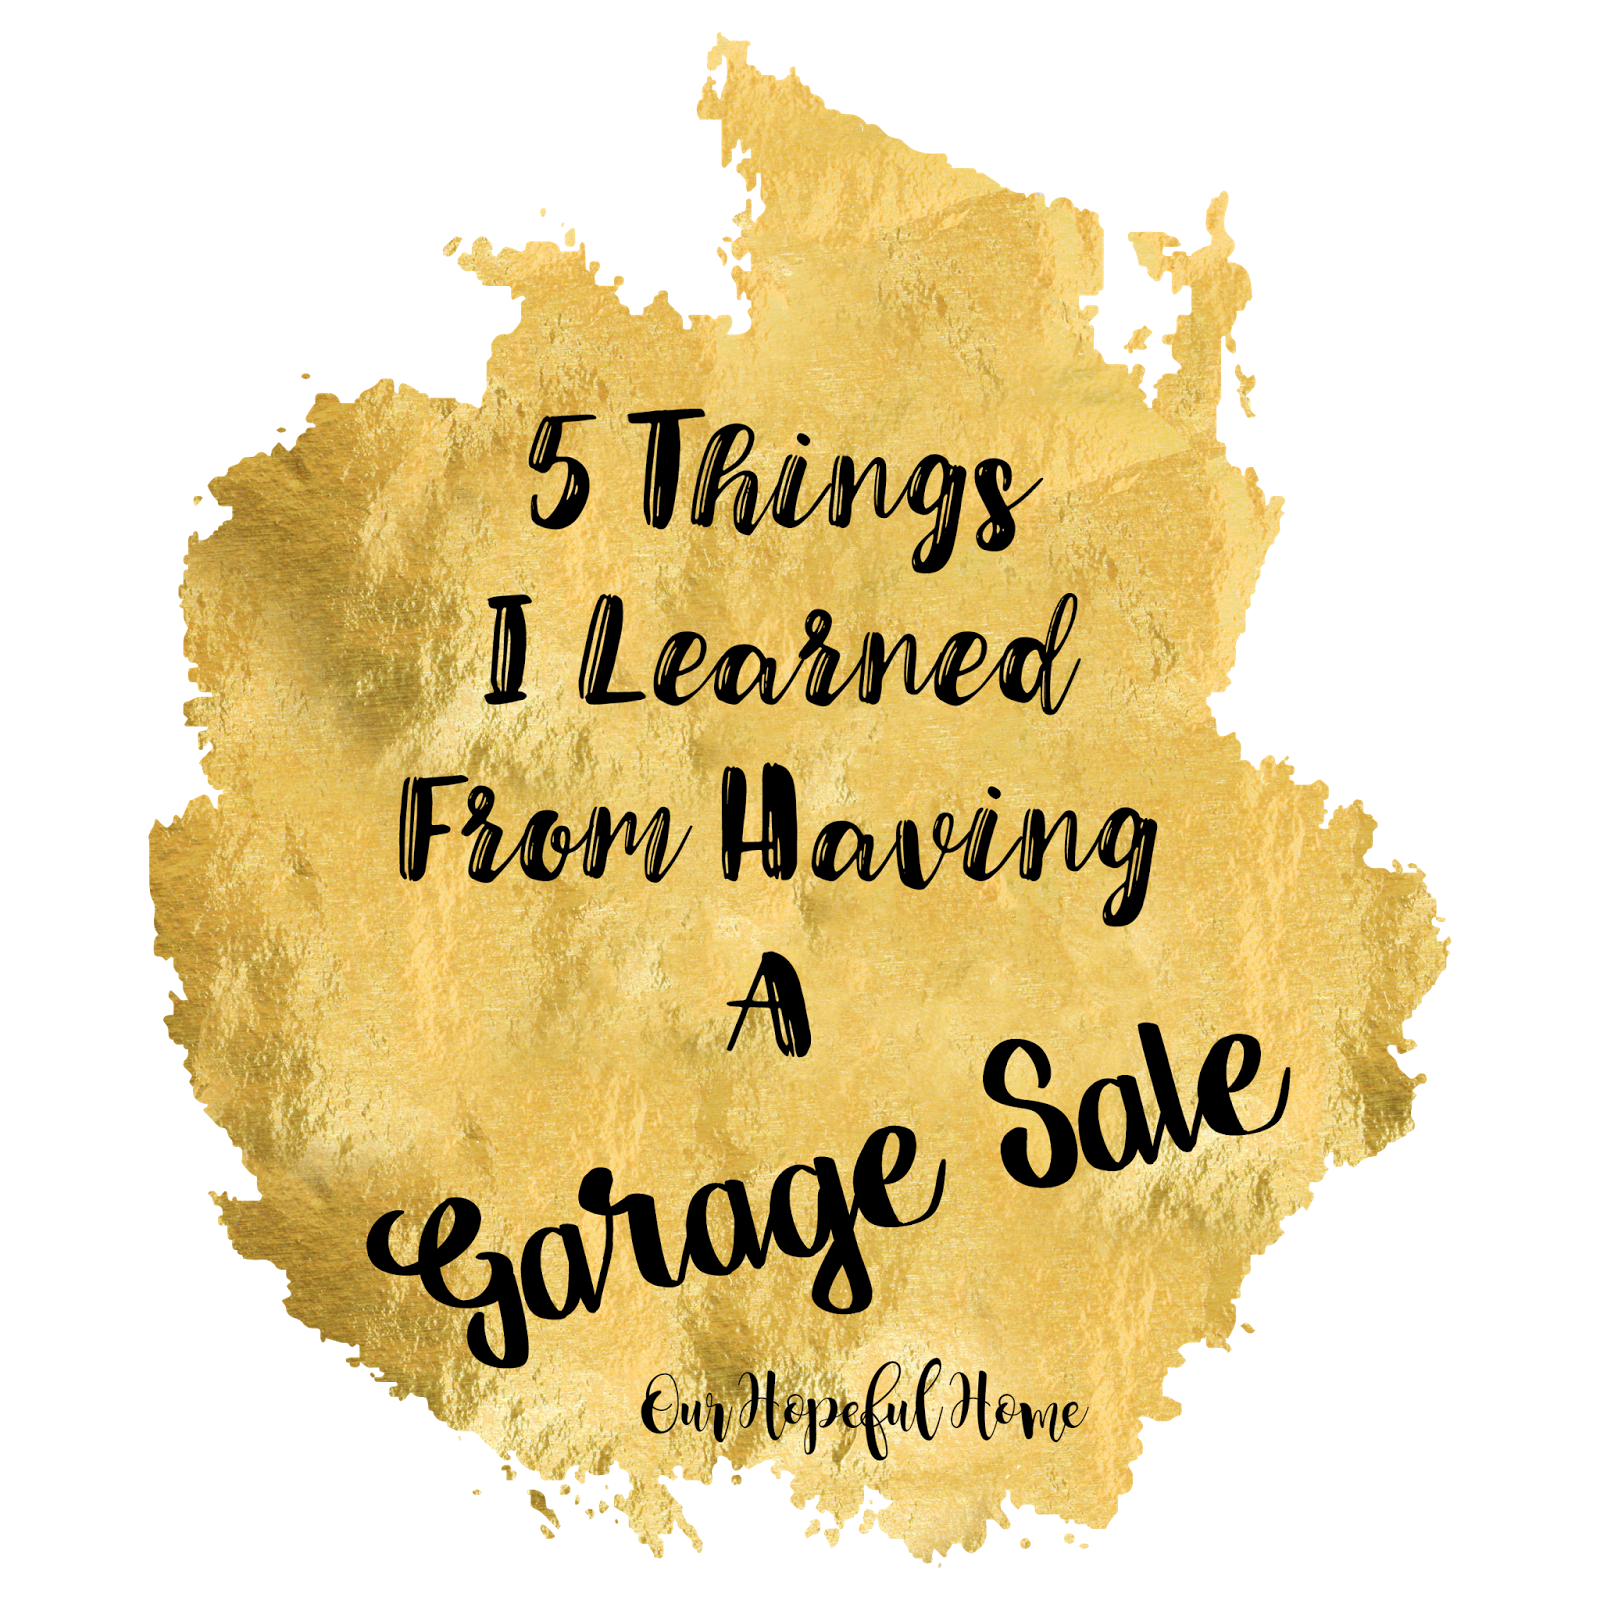 House pictures clipart with driveway svg freeuse stock Our Hopeful Home: 5 Things I Learned From Having a Garage Sale svg freeuse stock